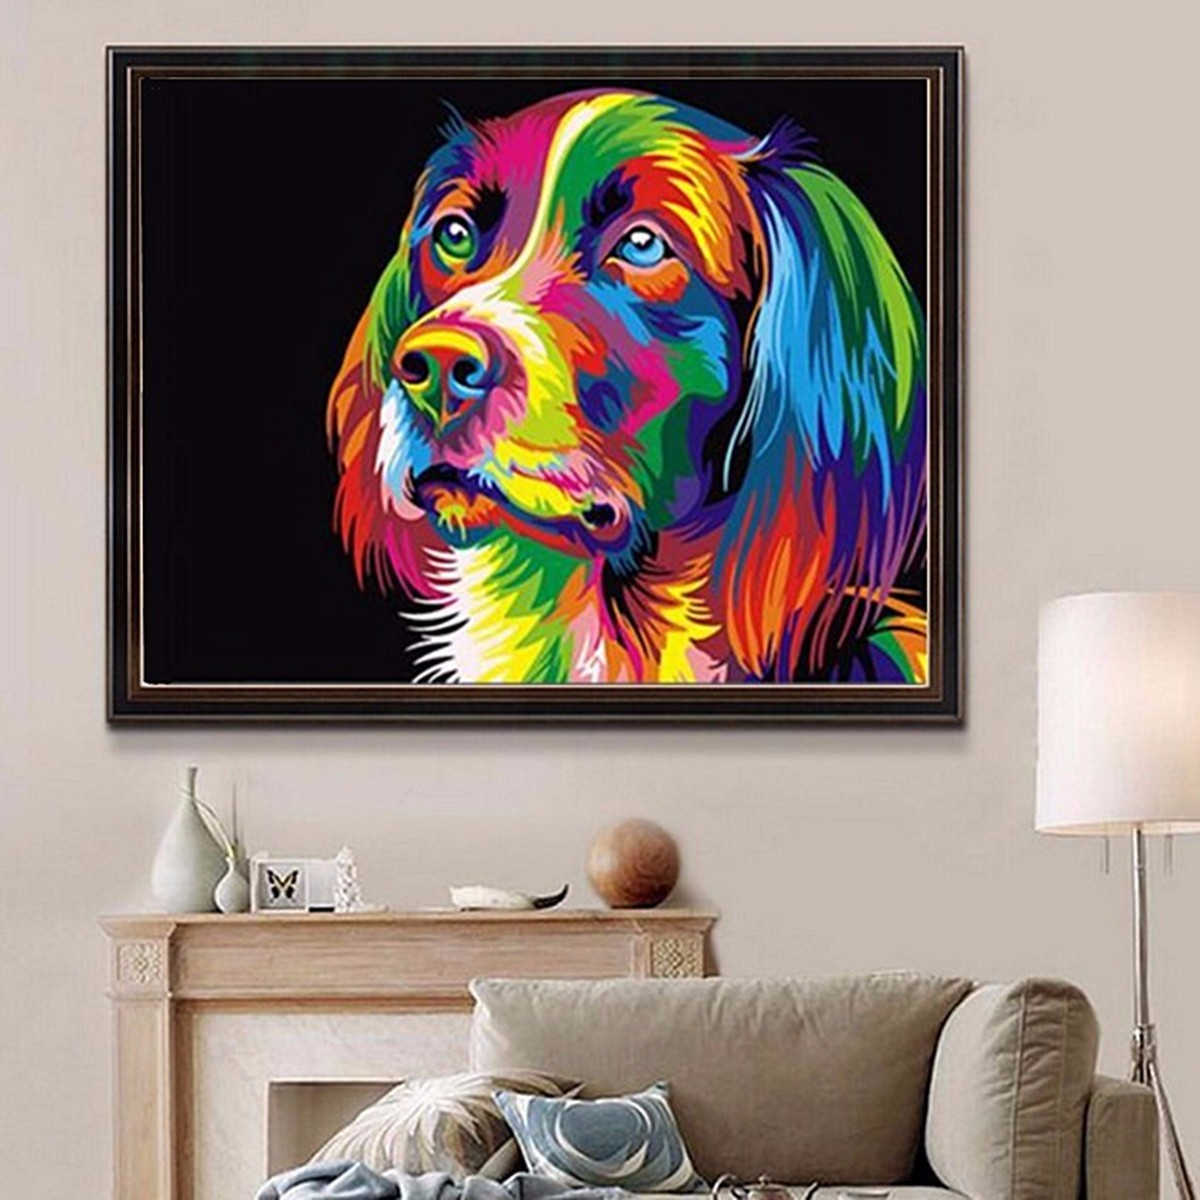 50x40cm colorful puppy dog little animal pet diy self for Diy colorful wall art